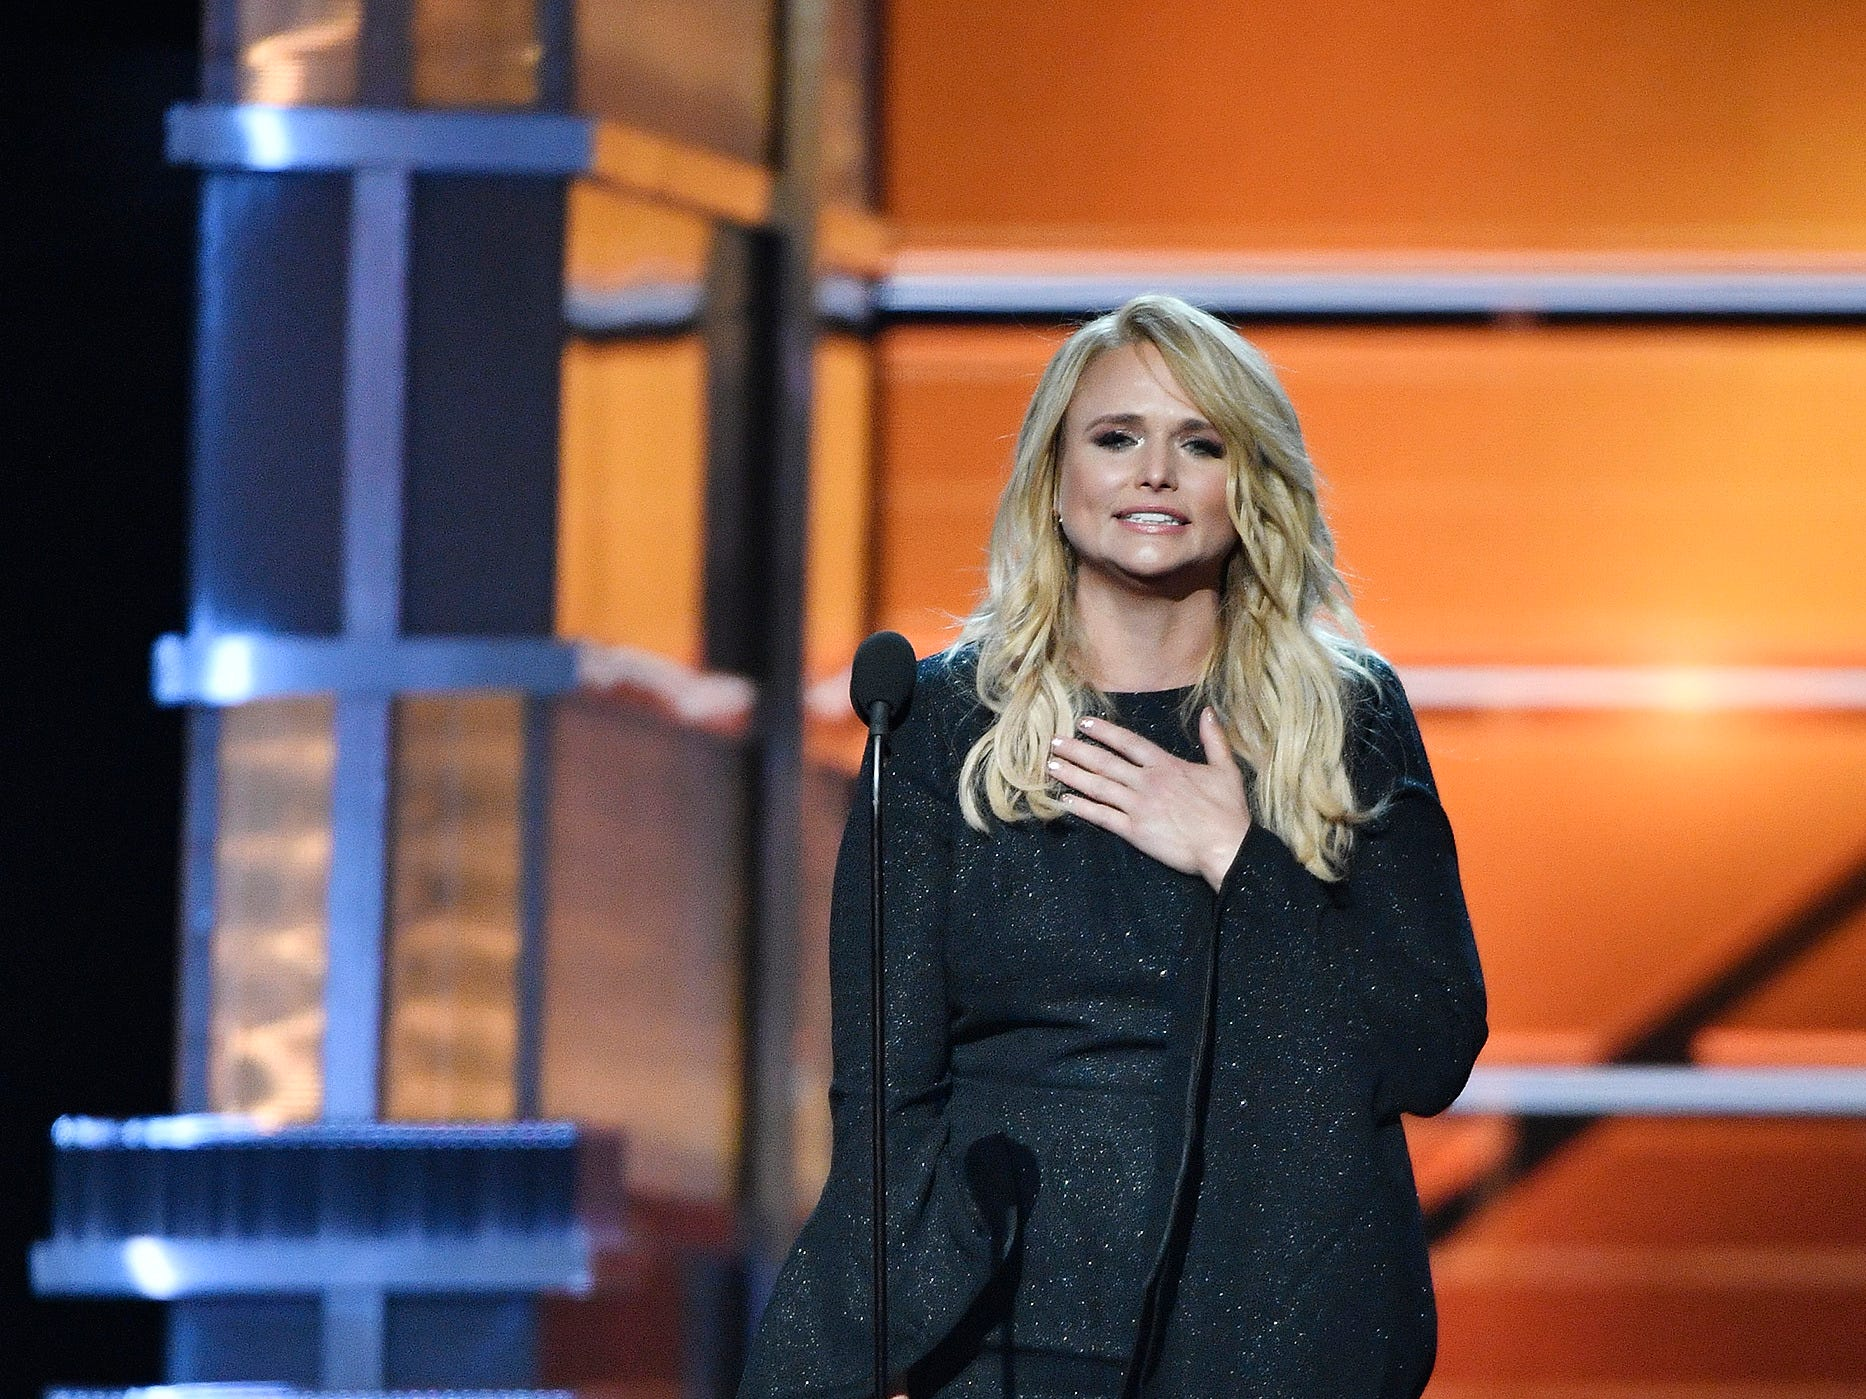 Miranda Lambert accepts her award for female vocalist of year during the 53rd Academy of Country Music Awards at the MGM Grand Garden Arena Sunday, April 15, 2018, in Las Vegas. ORG XMIT: TNNAT (Via OlyDrop)